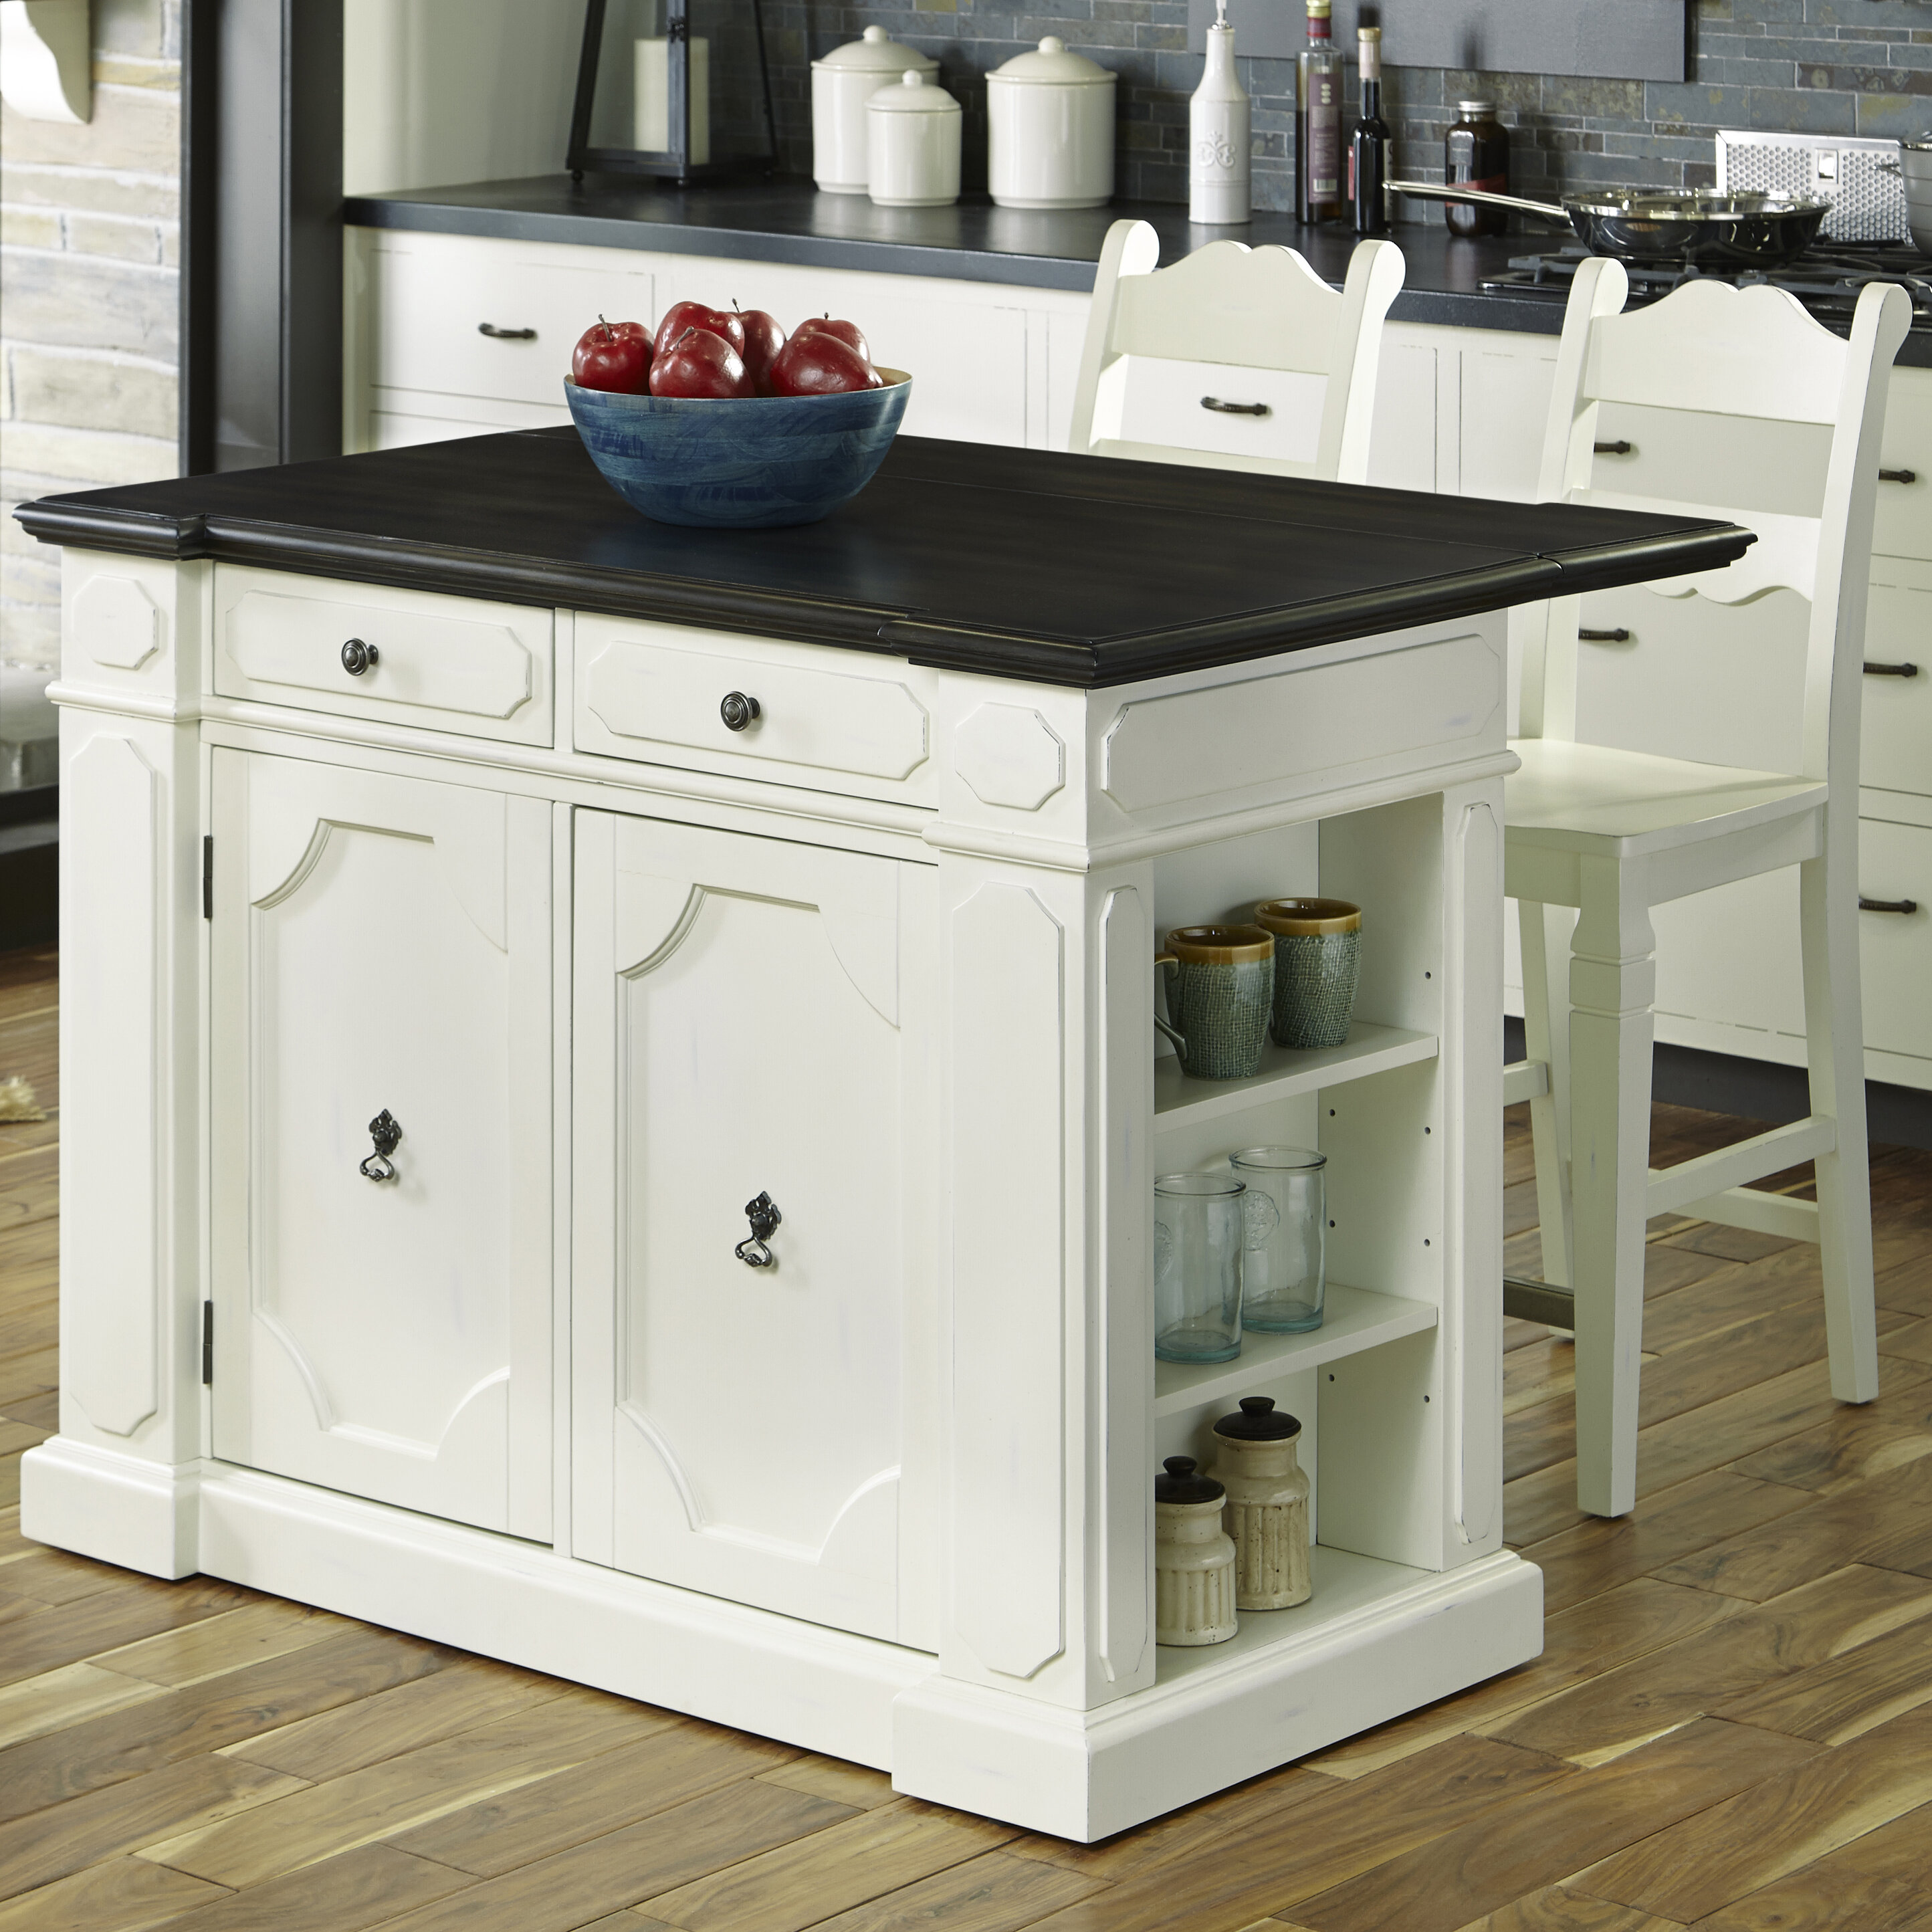 Home Styles Fiesta Kitchen Island Set | Wayfair